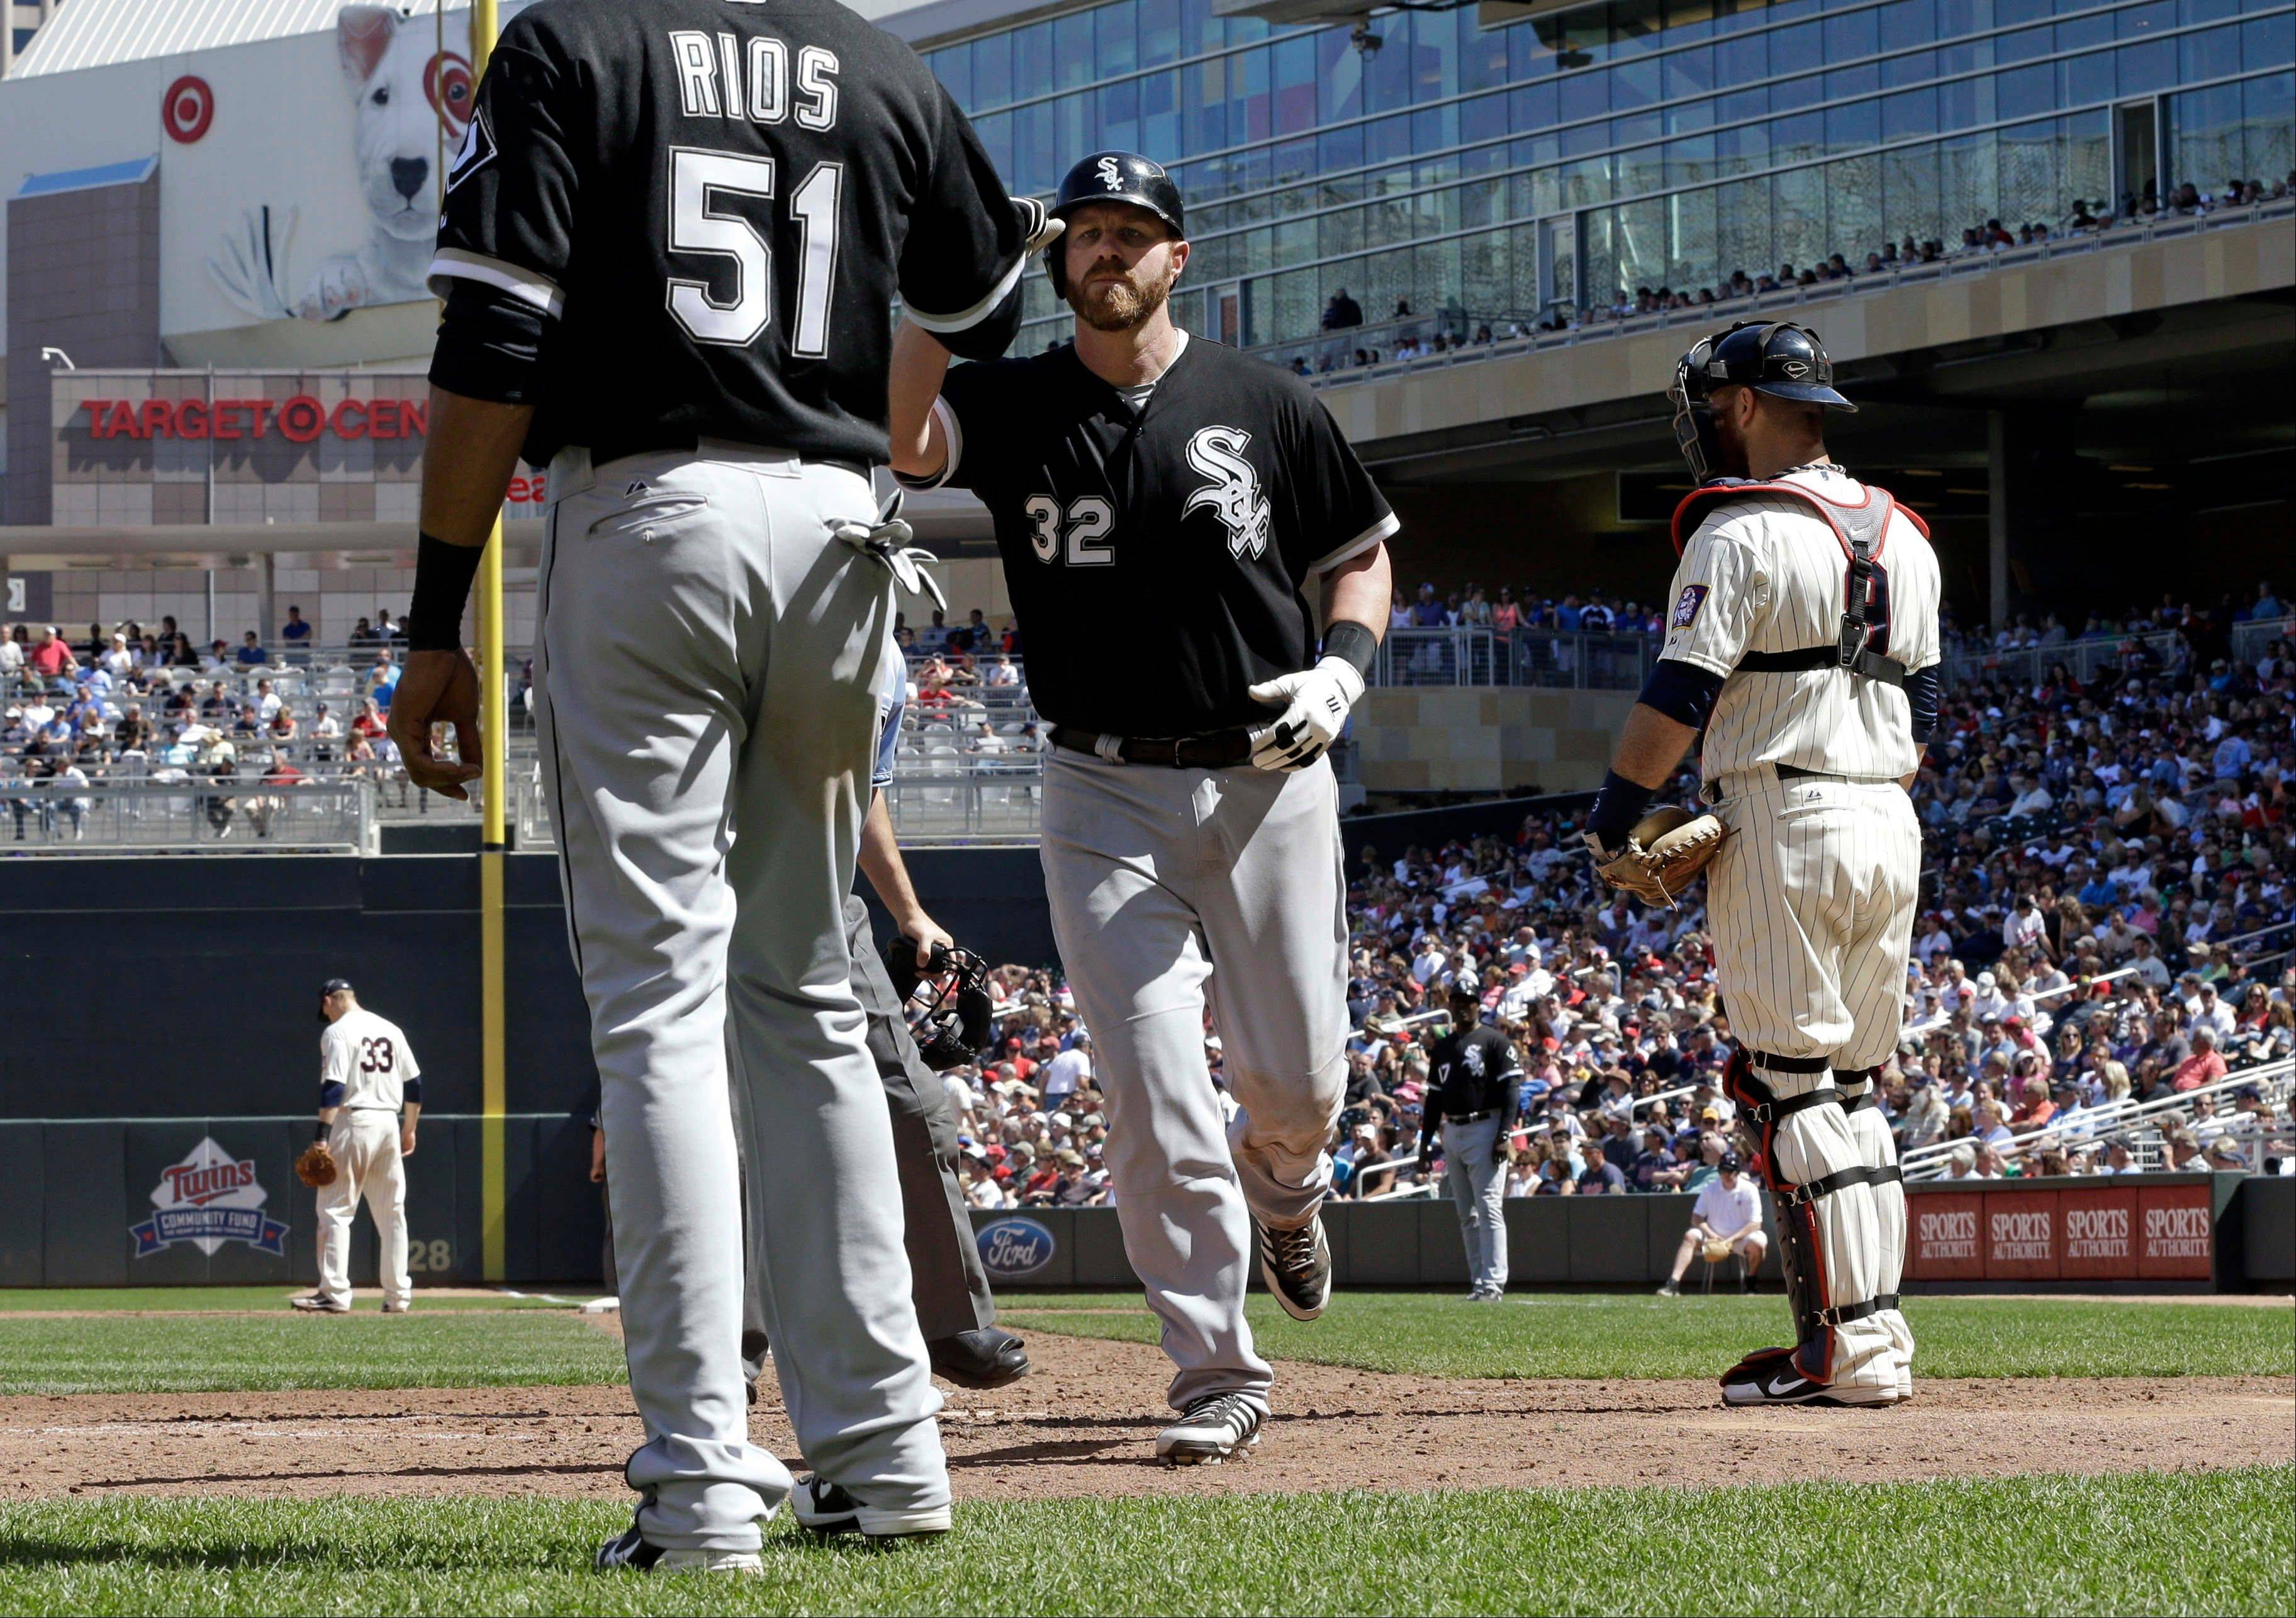 Chicago White Sox' Adam Dunn (32) is greeted by teammate Alex Rios after hitting his second two-run home run Wednesday against the Minnesota Twins in Minneapolis. The White Sox won 9-4.